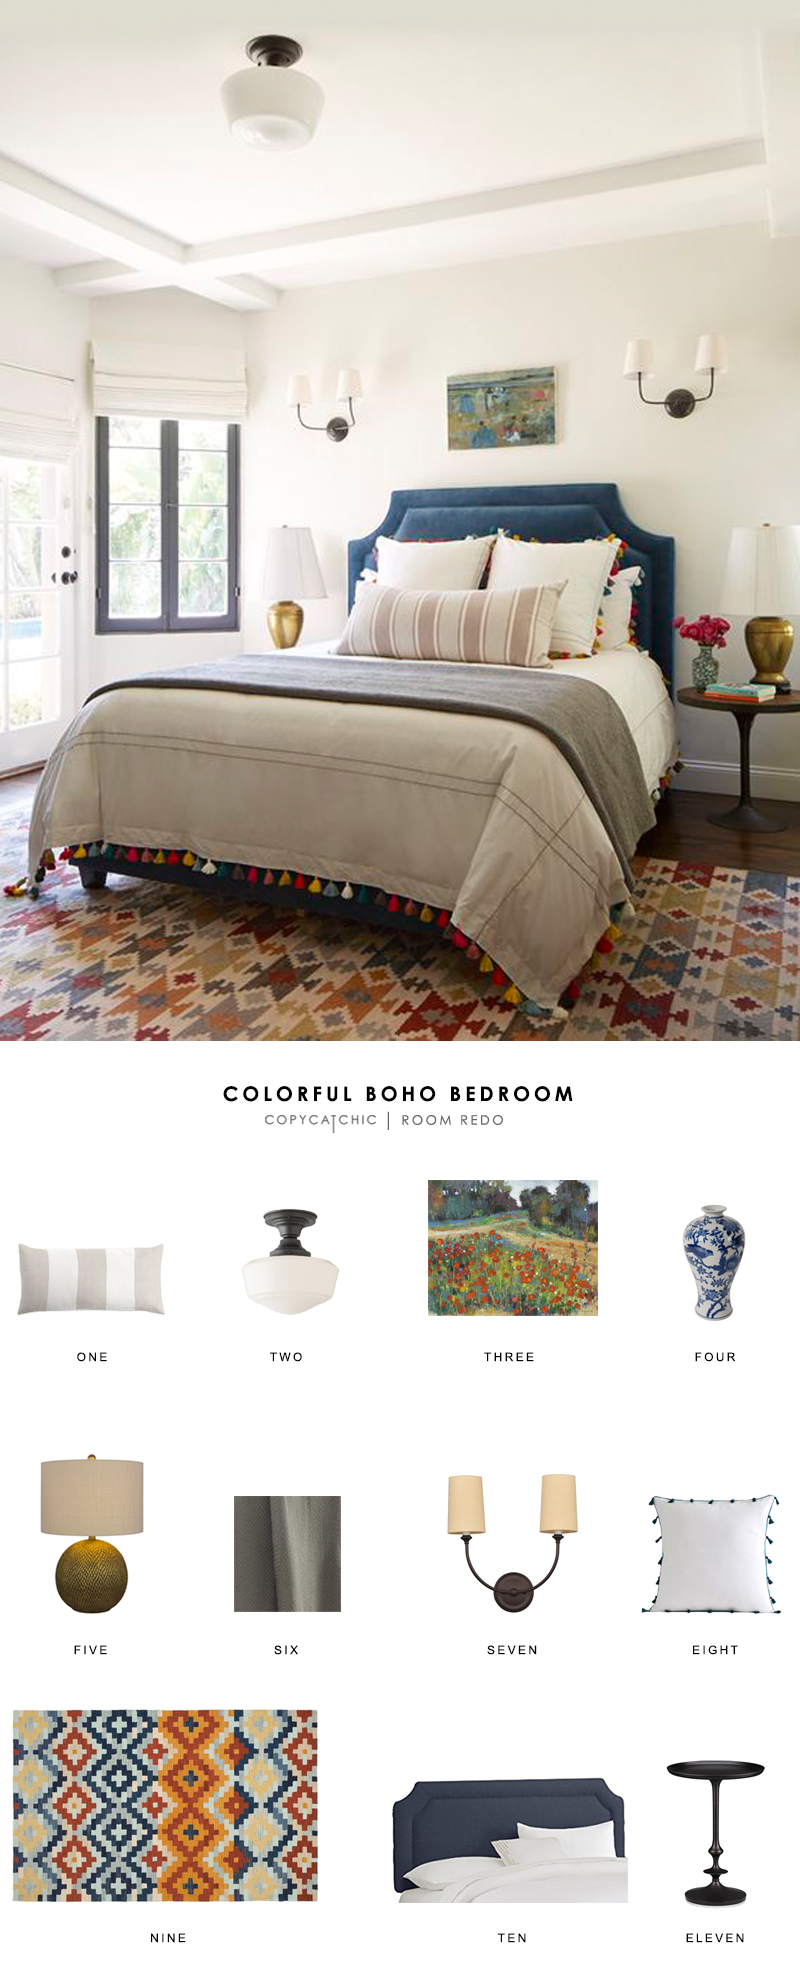 A colorful boho chic bedroom by Emily Henderson gets recreated for less by copycatchic luxe living for less budget home decor and design